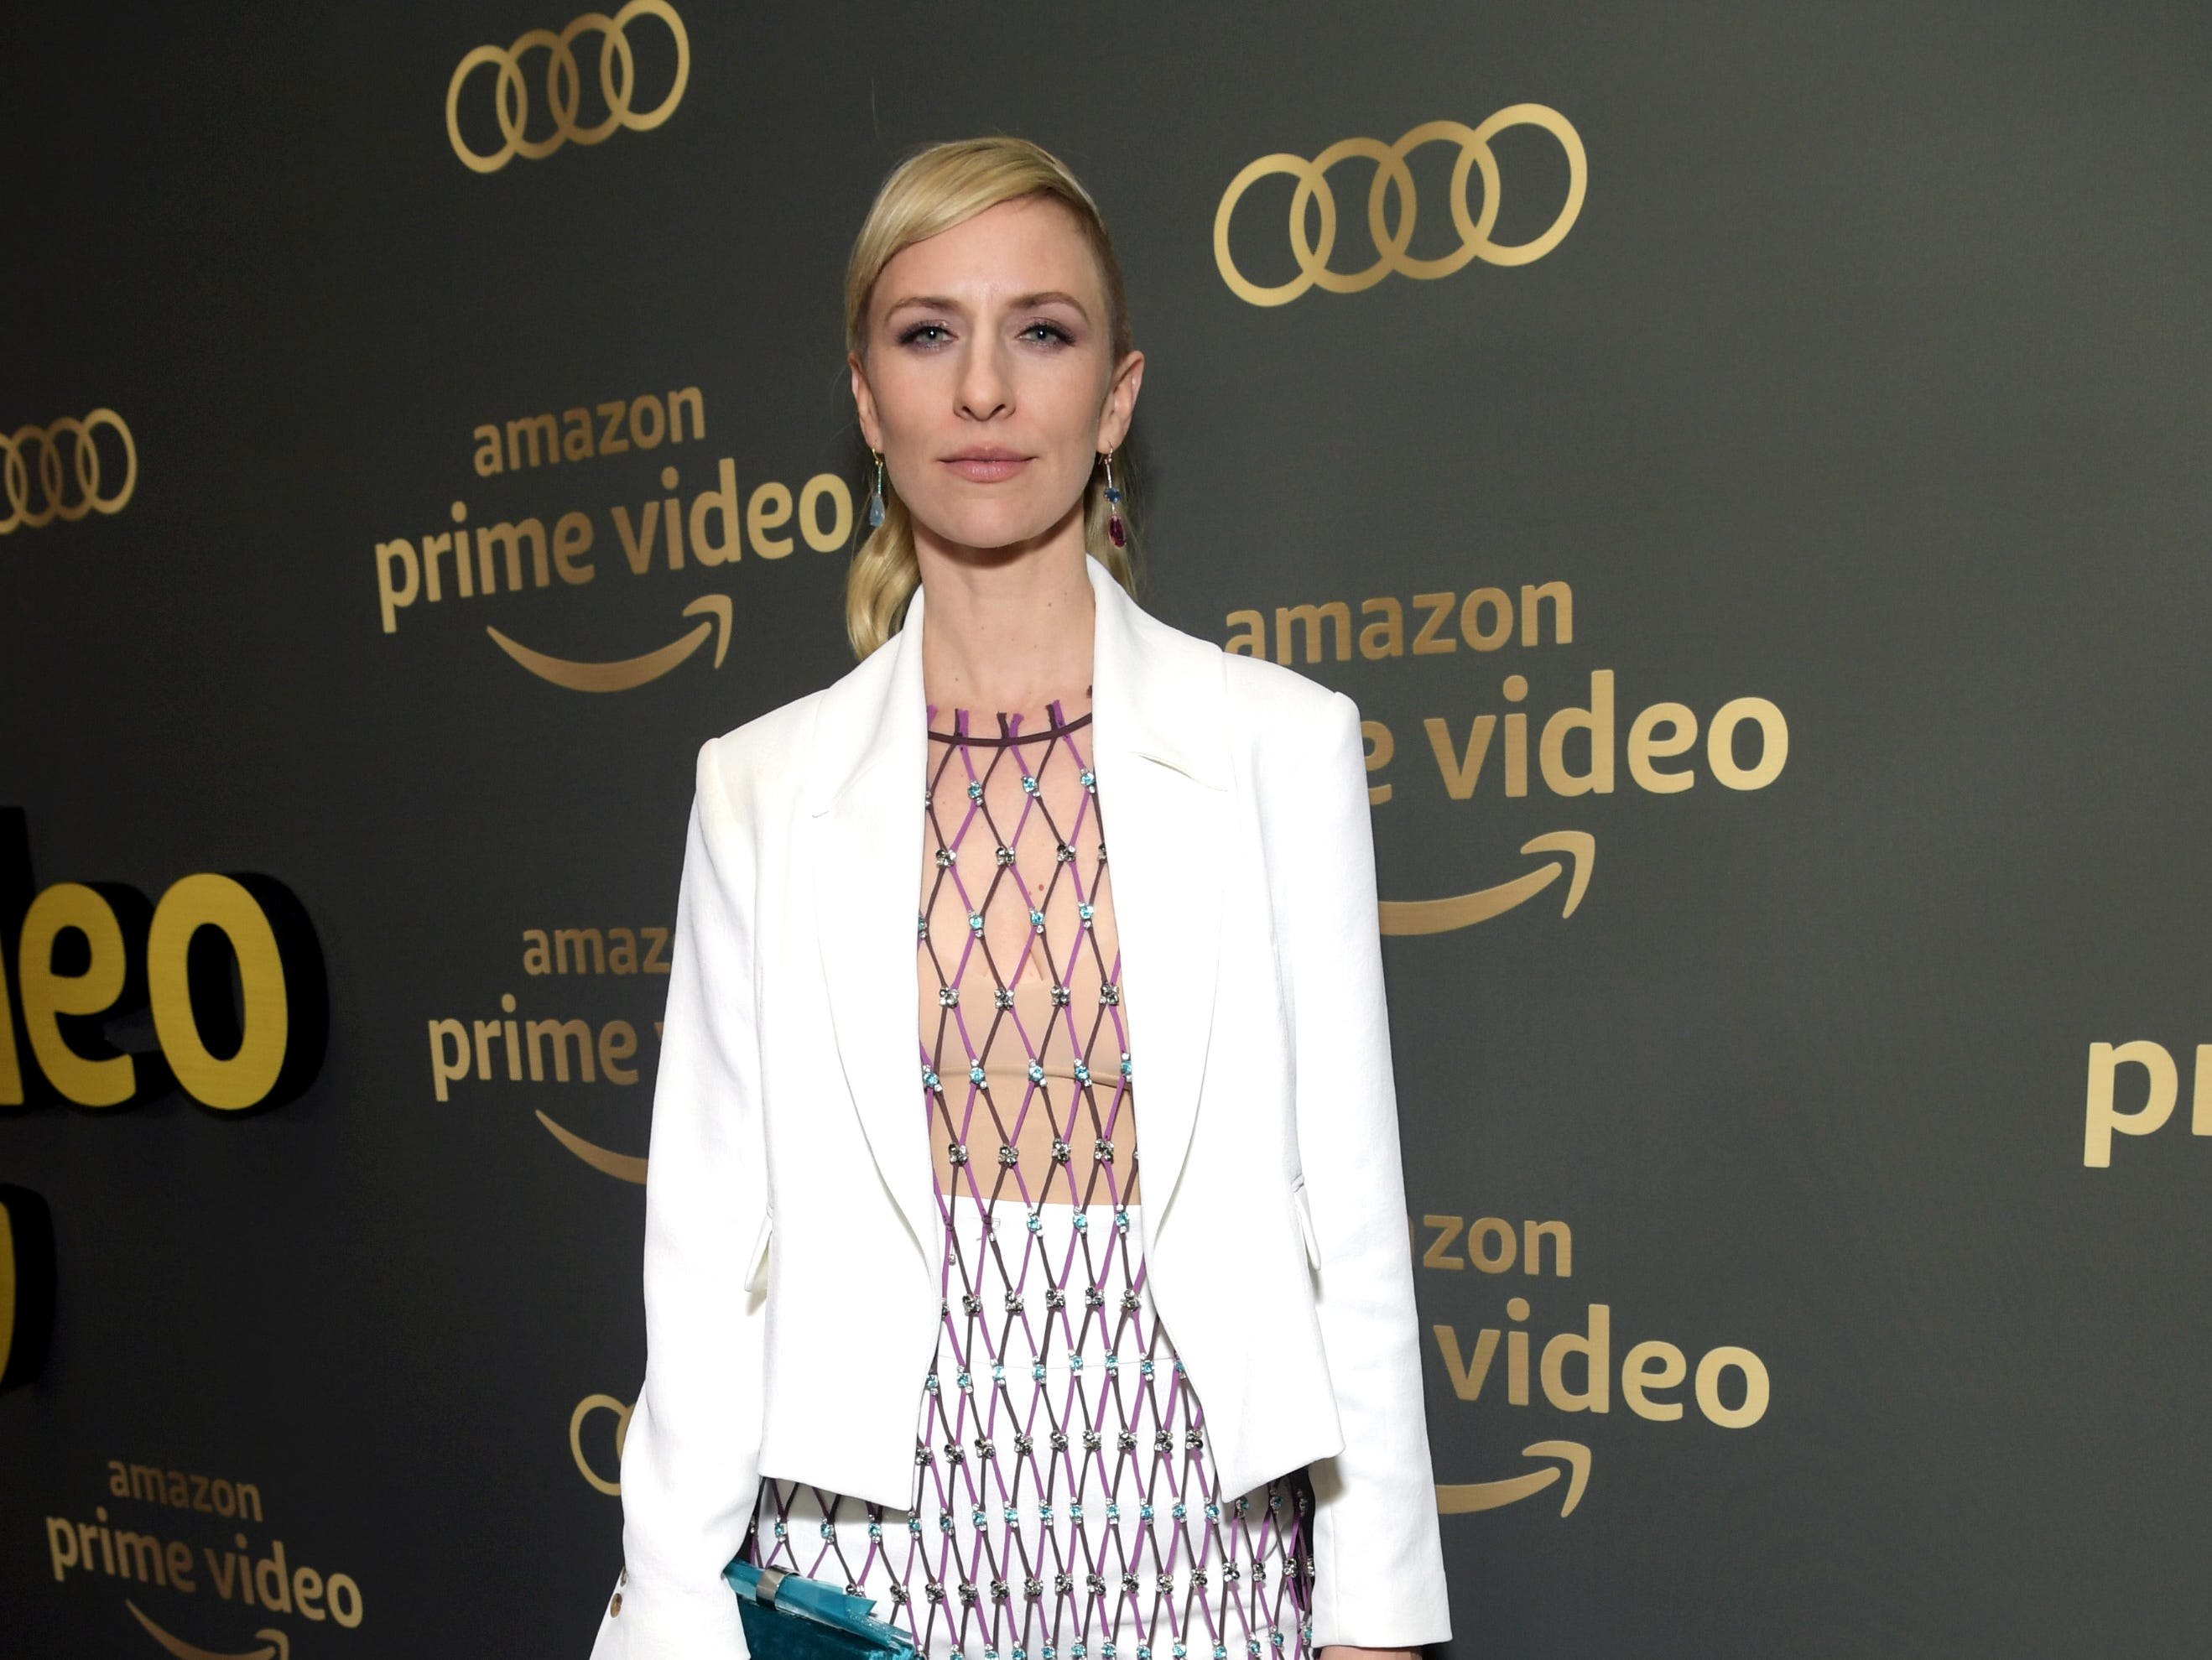 BEVERLY HILLS, CA - JANUARY 06: Mickey Sumner attends the Amazon Prime Video's Golden Globe Awards After Party at The Beverly Hilton Hotel on January 6, 2019 in Beverly Hills, California.  (Photo by Emma McIntyre/Getty Images) ORG XMIT: 775274444 ORIG FILE ID: 1078617284